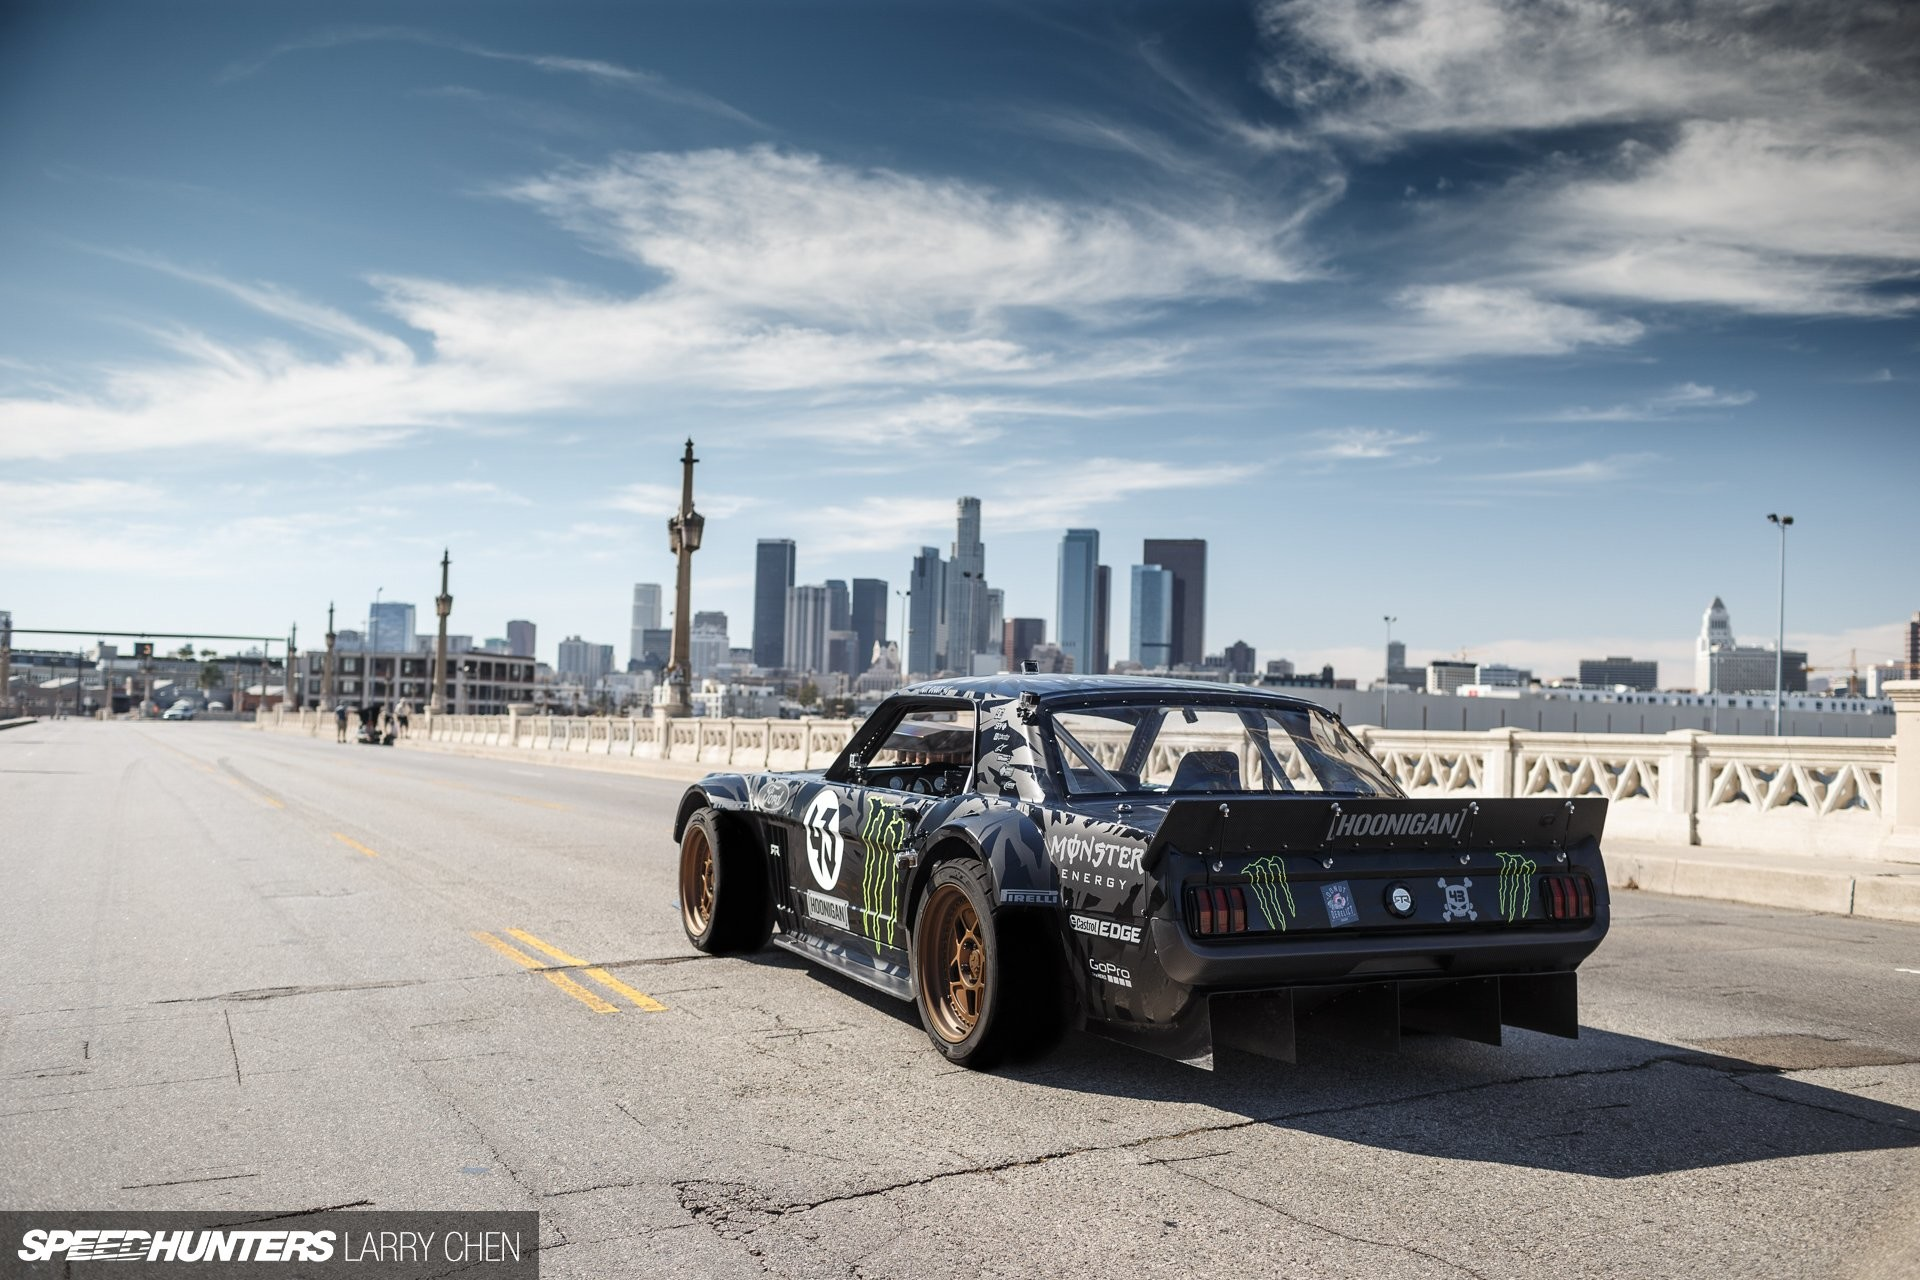 1920x1280 1965 Ford Mustang Hoonigan ASD Gymkhana-Seven drift hot rod rods muscle  race racing monster energy Hoonicorn wallpaper |  | 531608 |  WallpaperUP